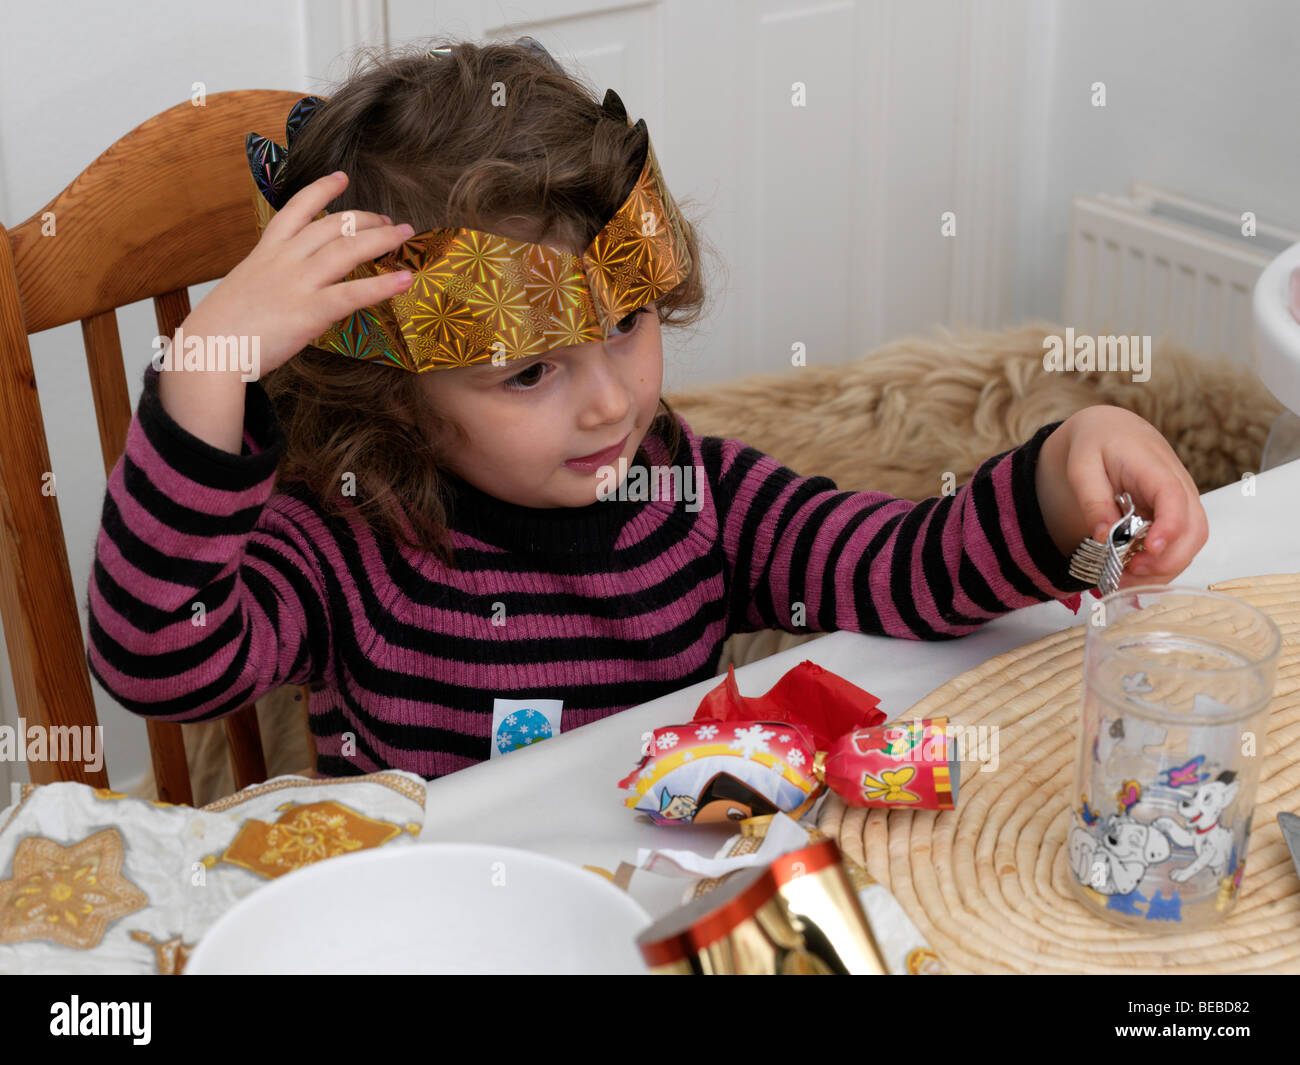 437c3845d2adb Four Year Old Girl With Paper Crown from a Cracker at Christmas - Stock  Image